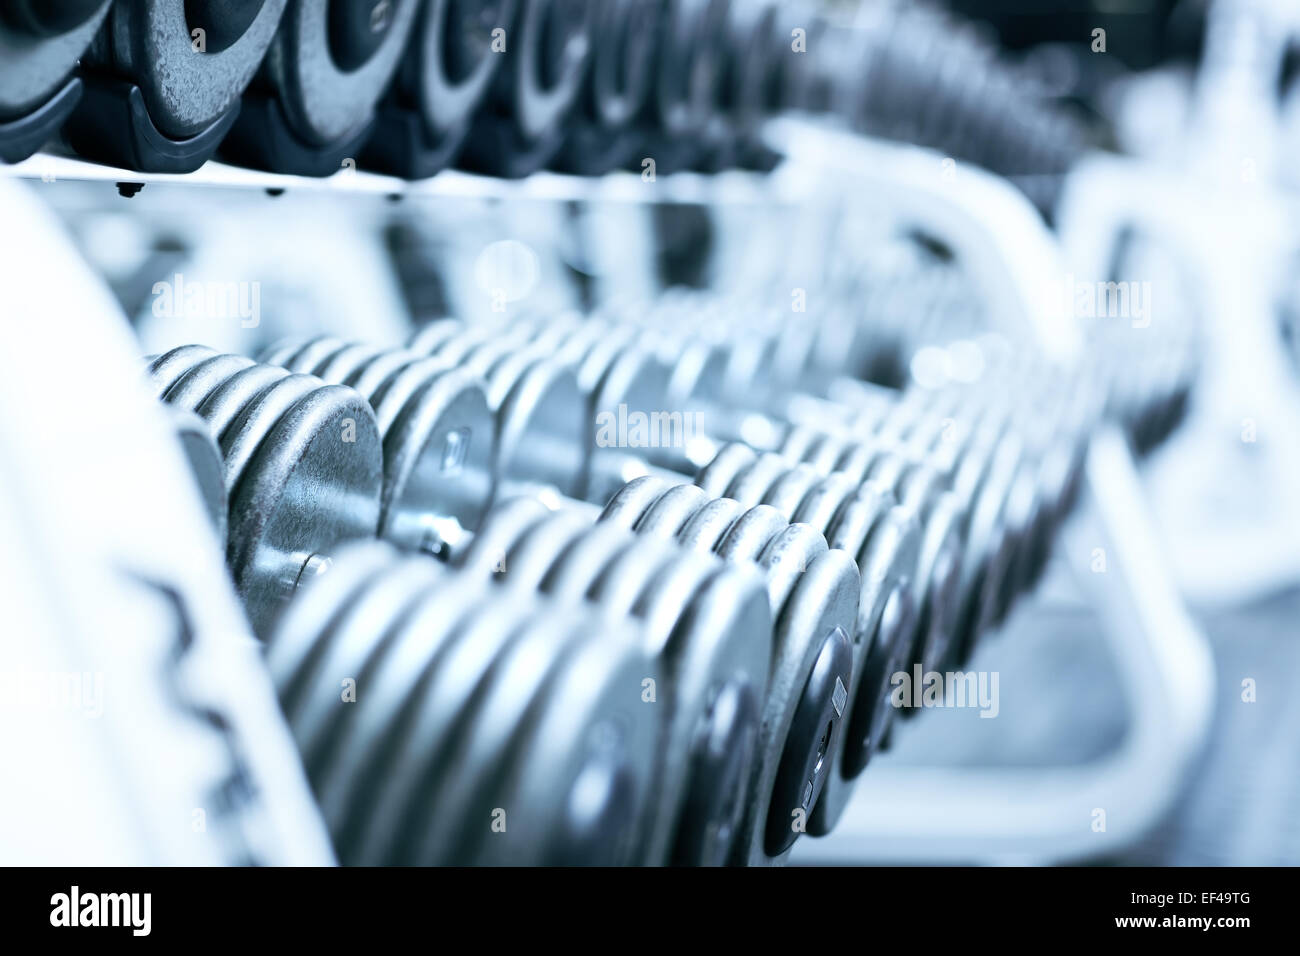 Dumbbells in gym. Soft blue tint. Stock Photo